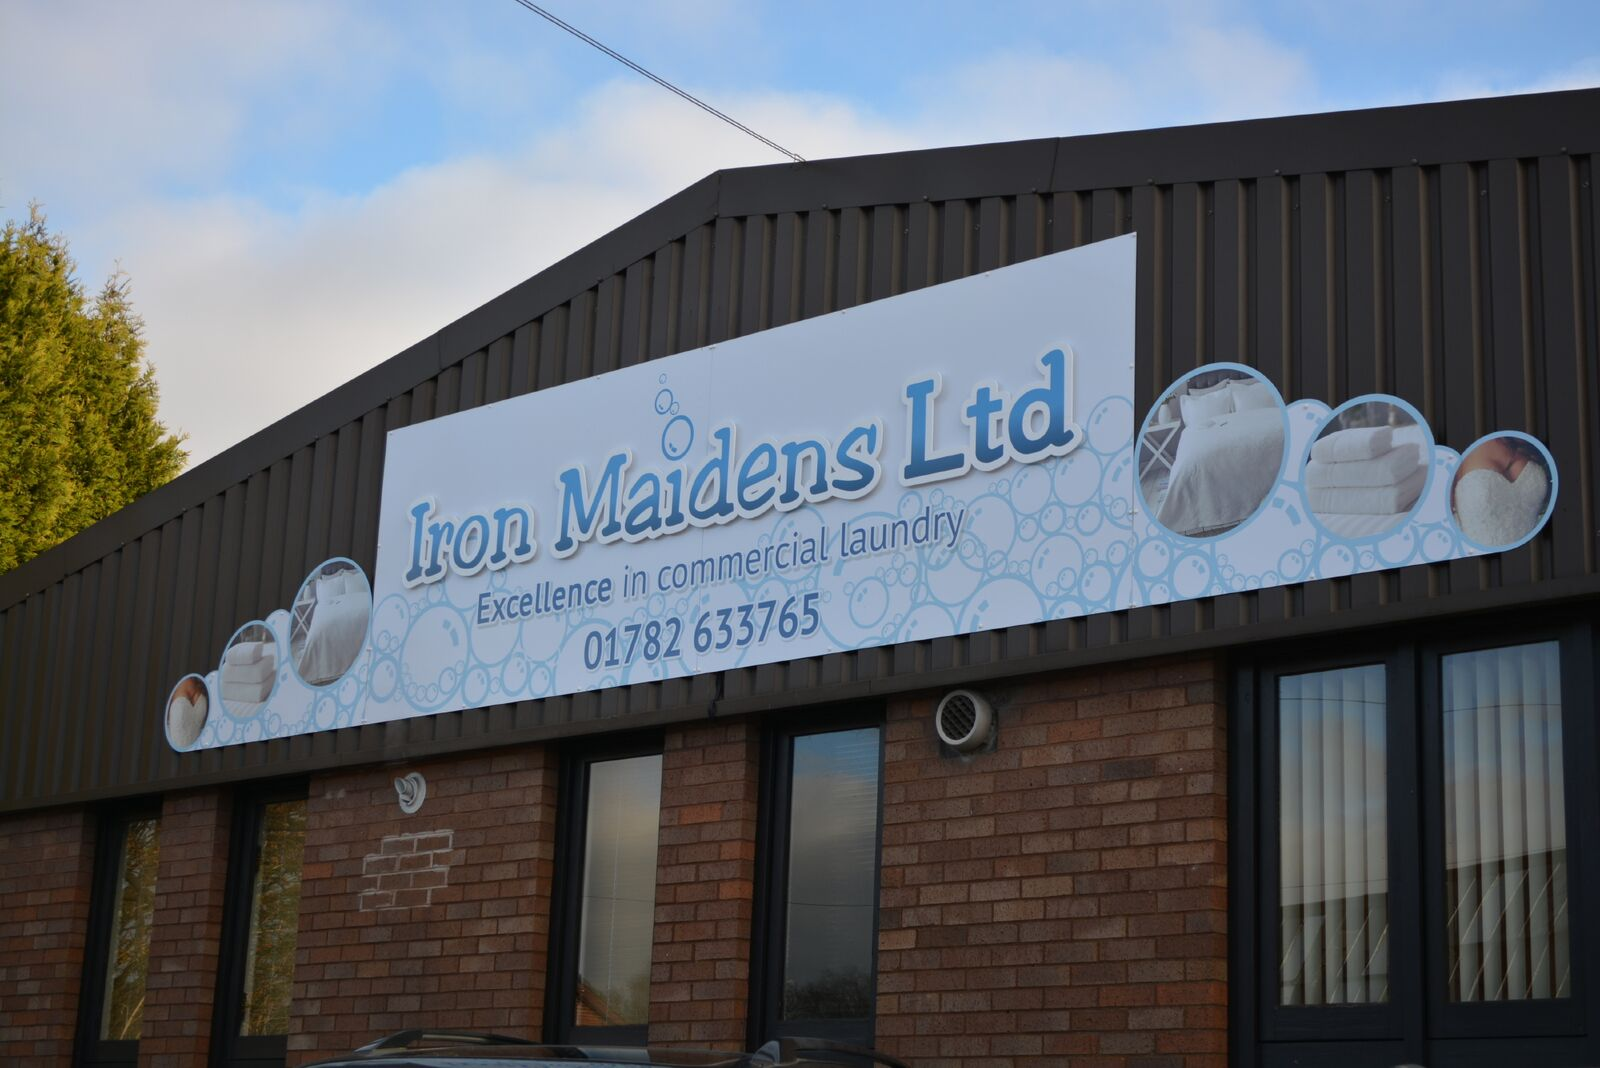 Investment in Iron Maidens leads to Expansion